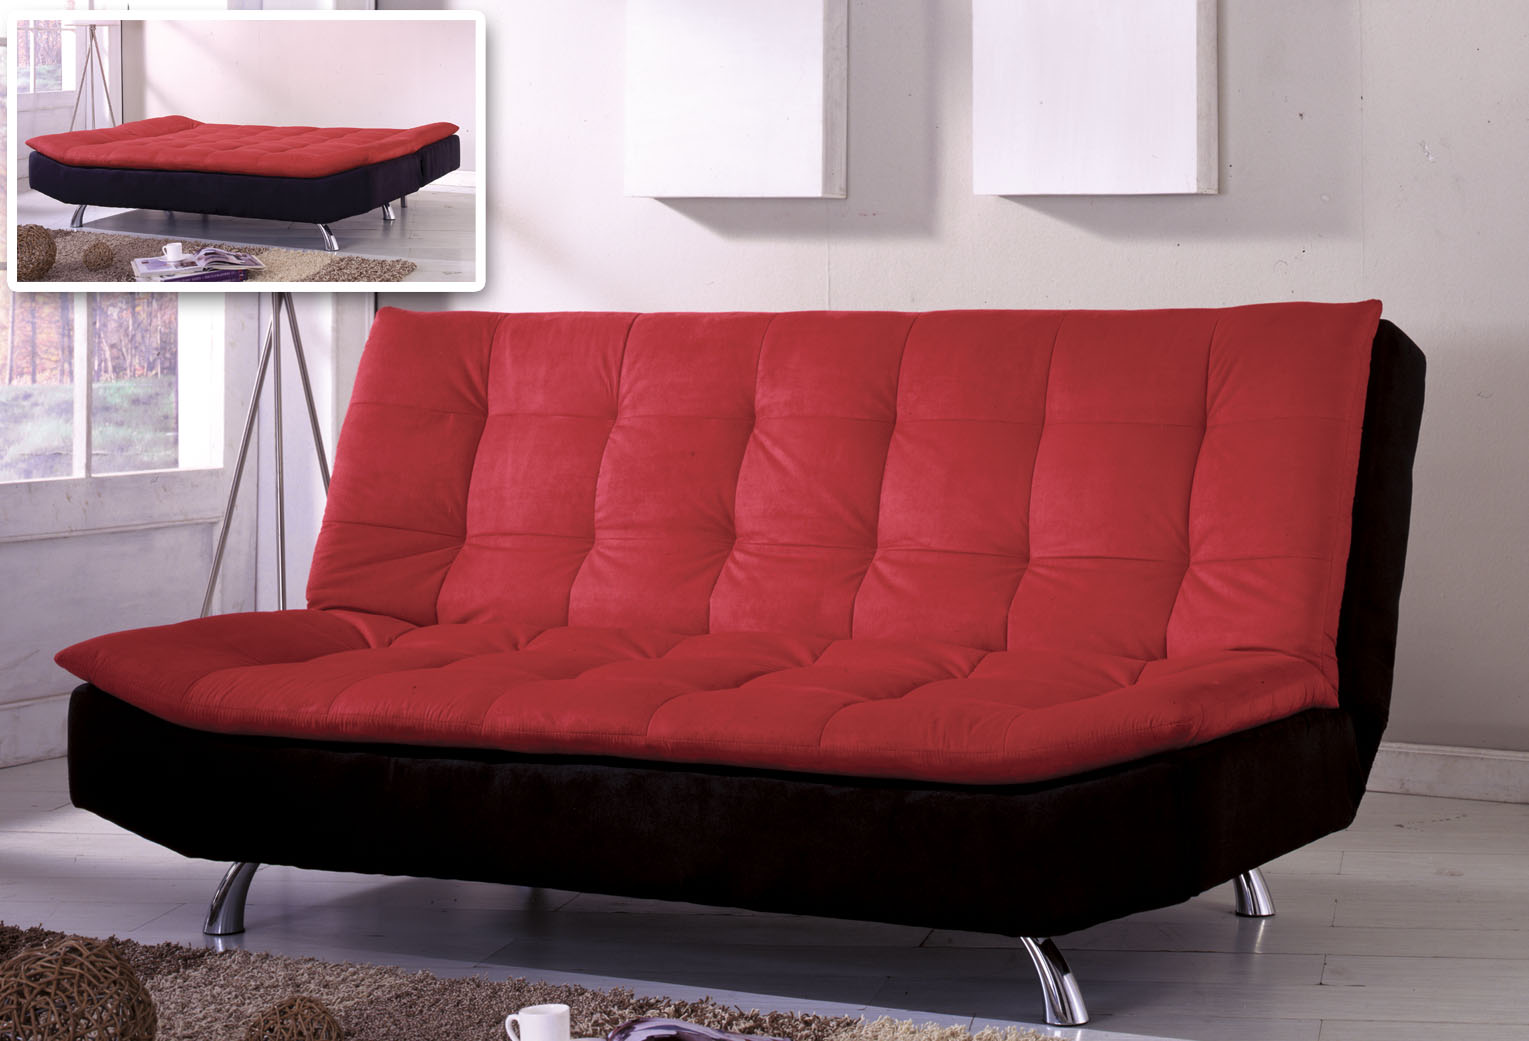 stylish red couches that turn into bed with tuft pattern and black accent  aside tripod lamp